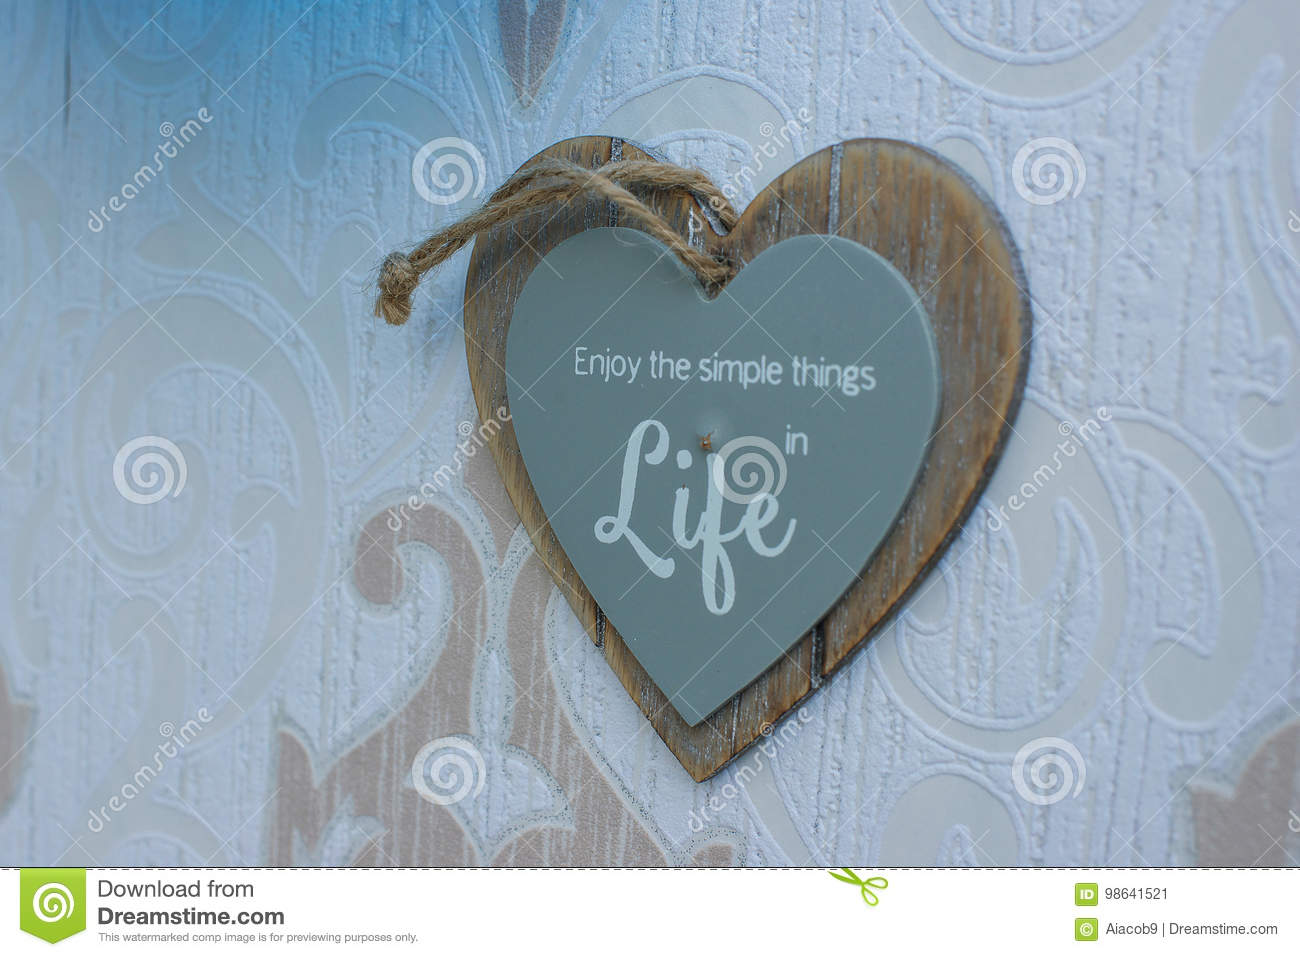 Heart Shaped Wooden Frame Sign Hang On The Wall Which Reads Enjoy